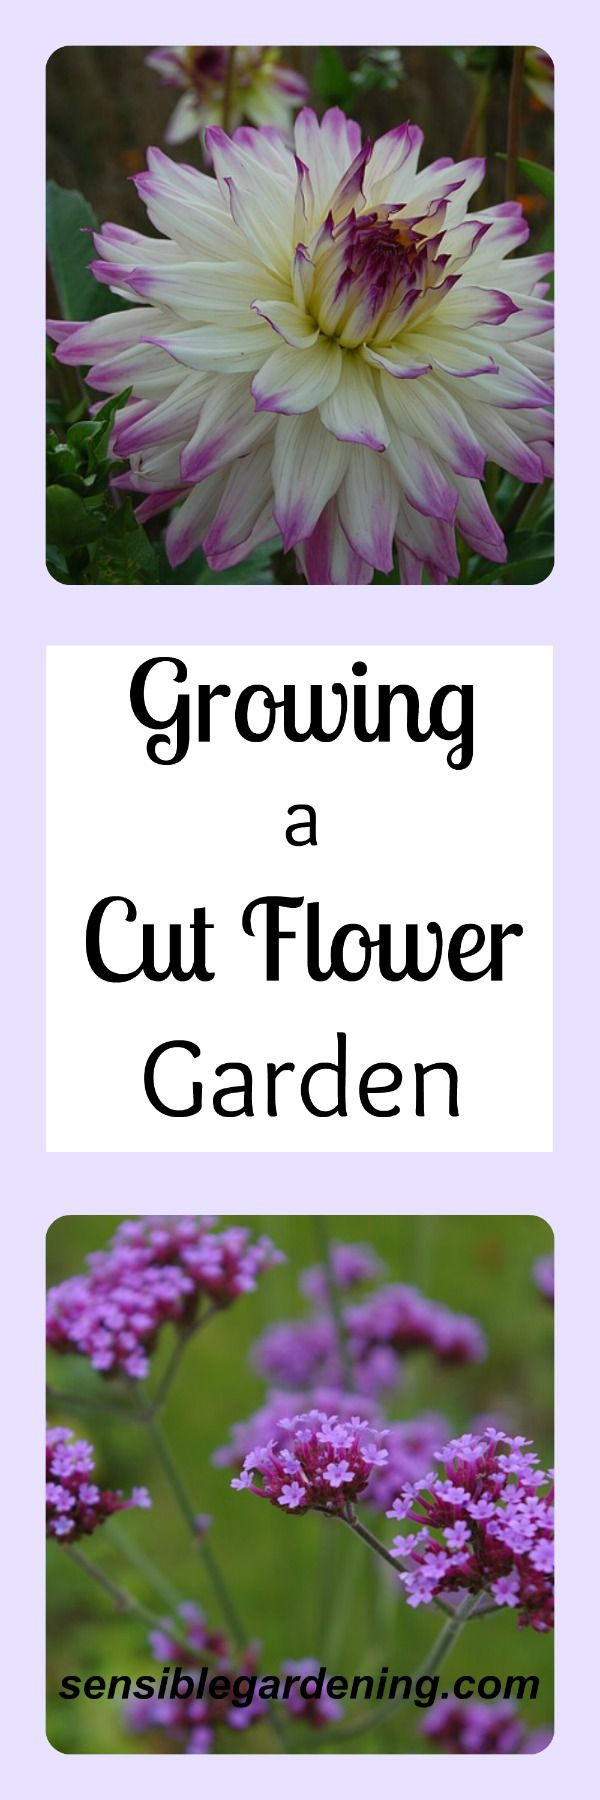 77 Best Cutting Gardens And Flower Arranging Images On Pinterest